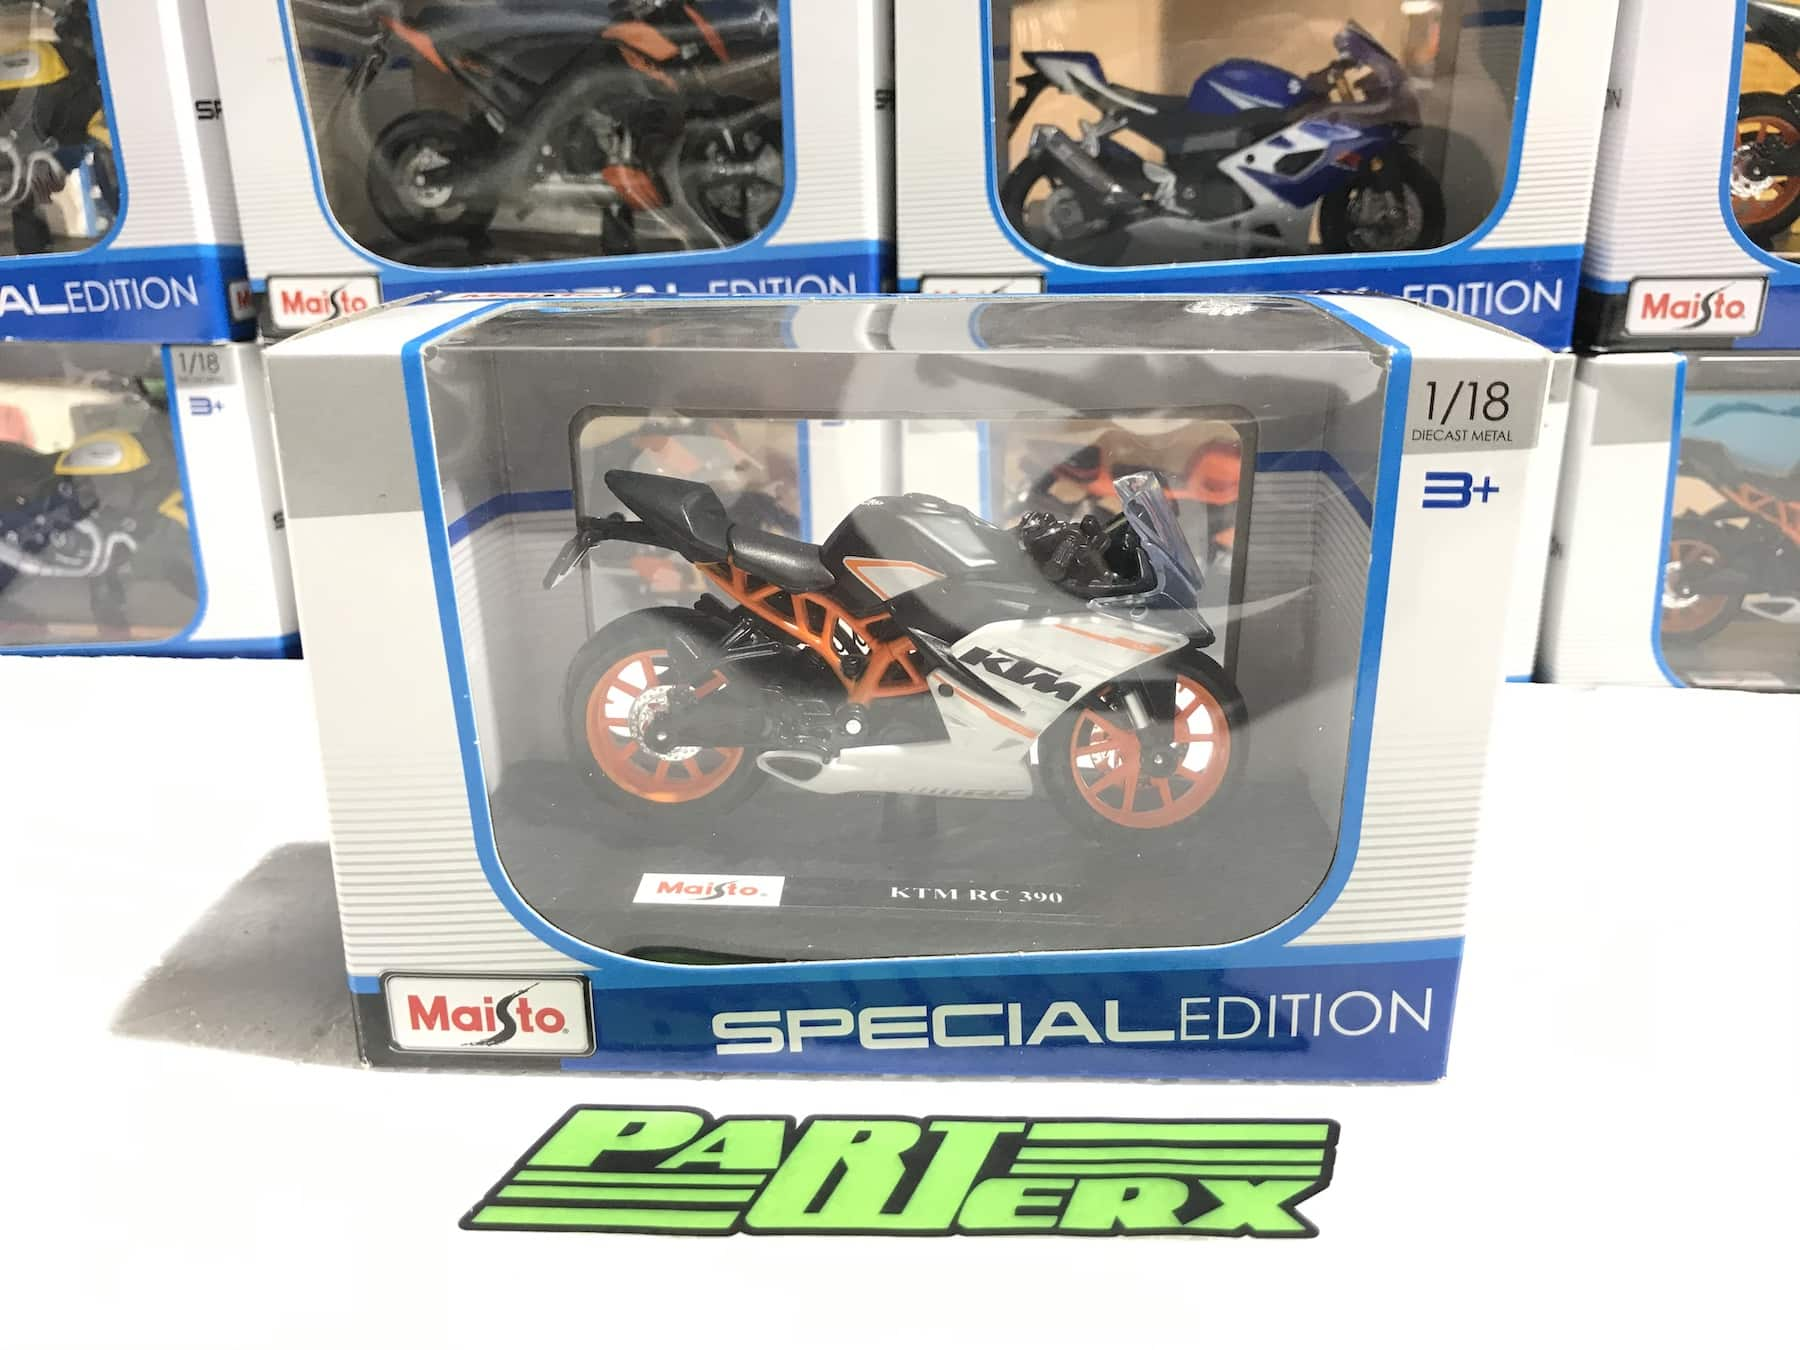 KTM RC 390 1:18 Motorbike Scale Model Motorcycle Toy Dads Fathers Kids Gift Birthday Present